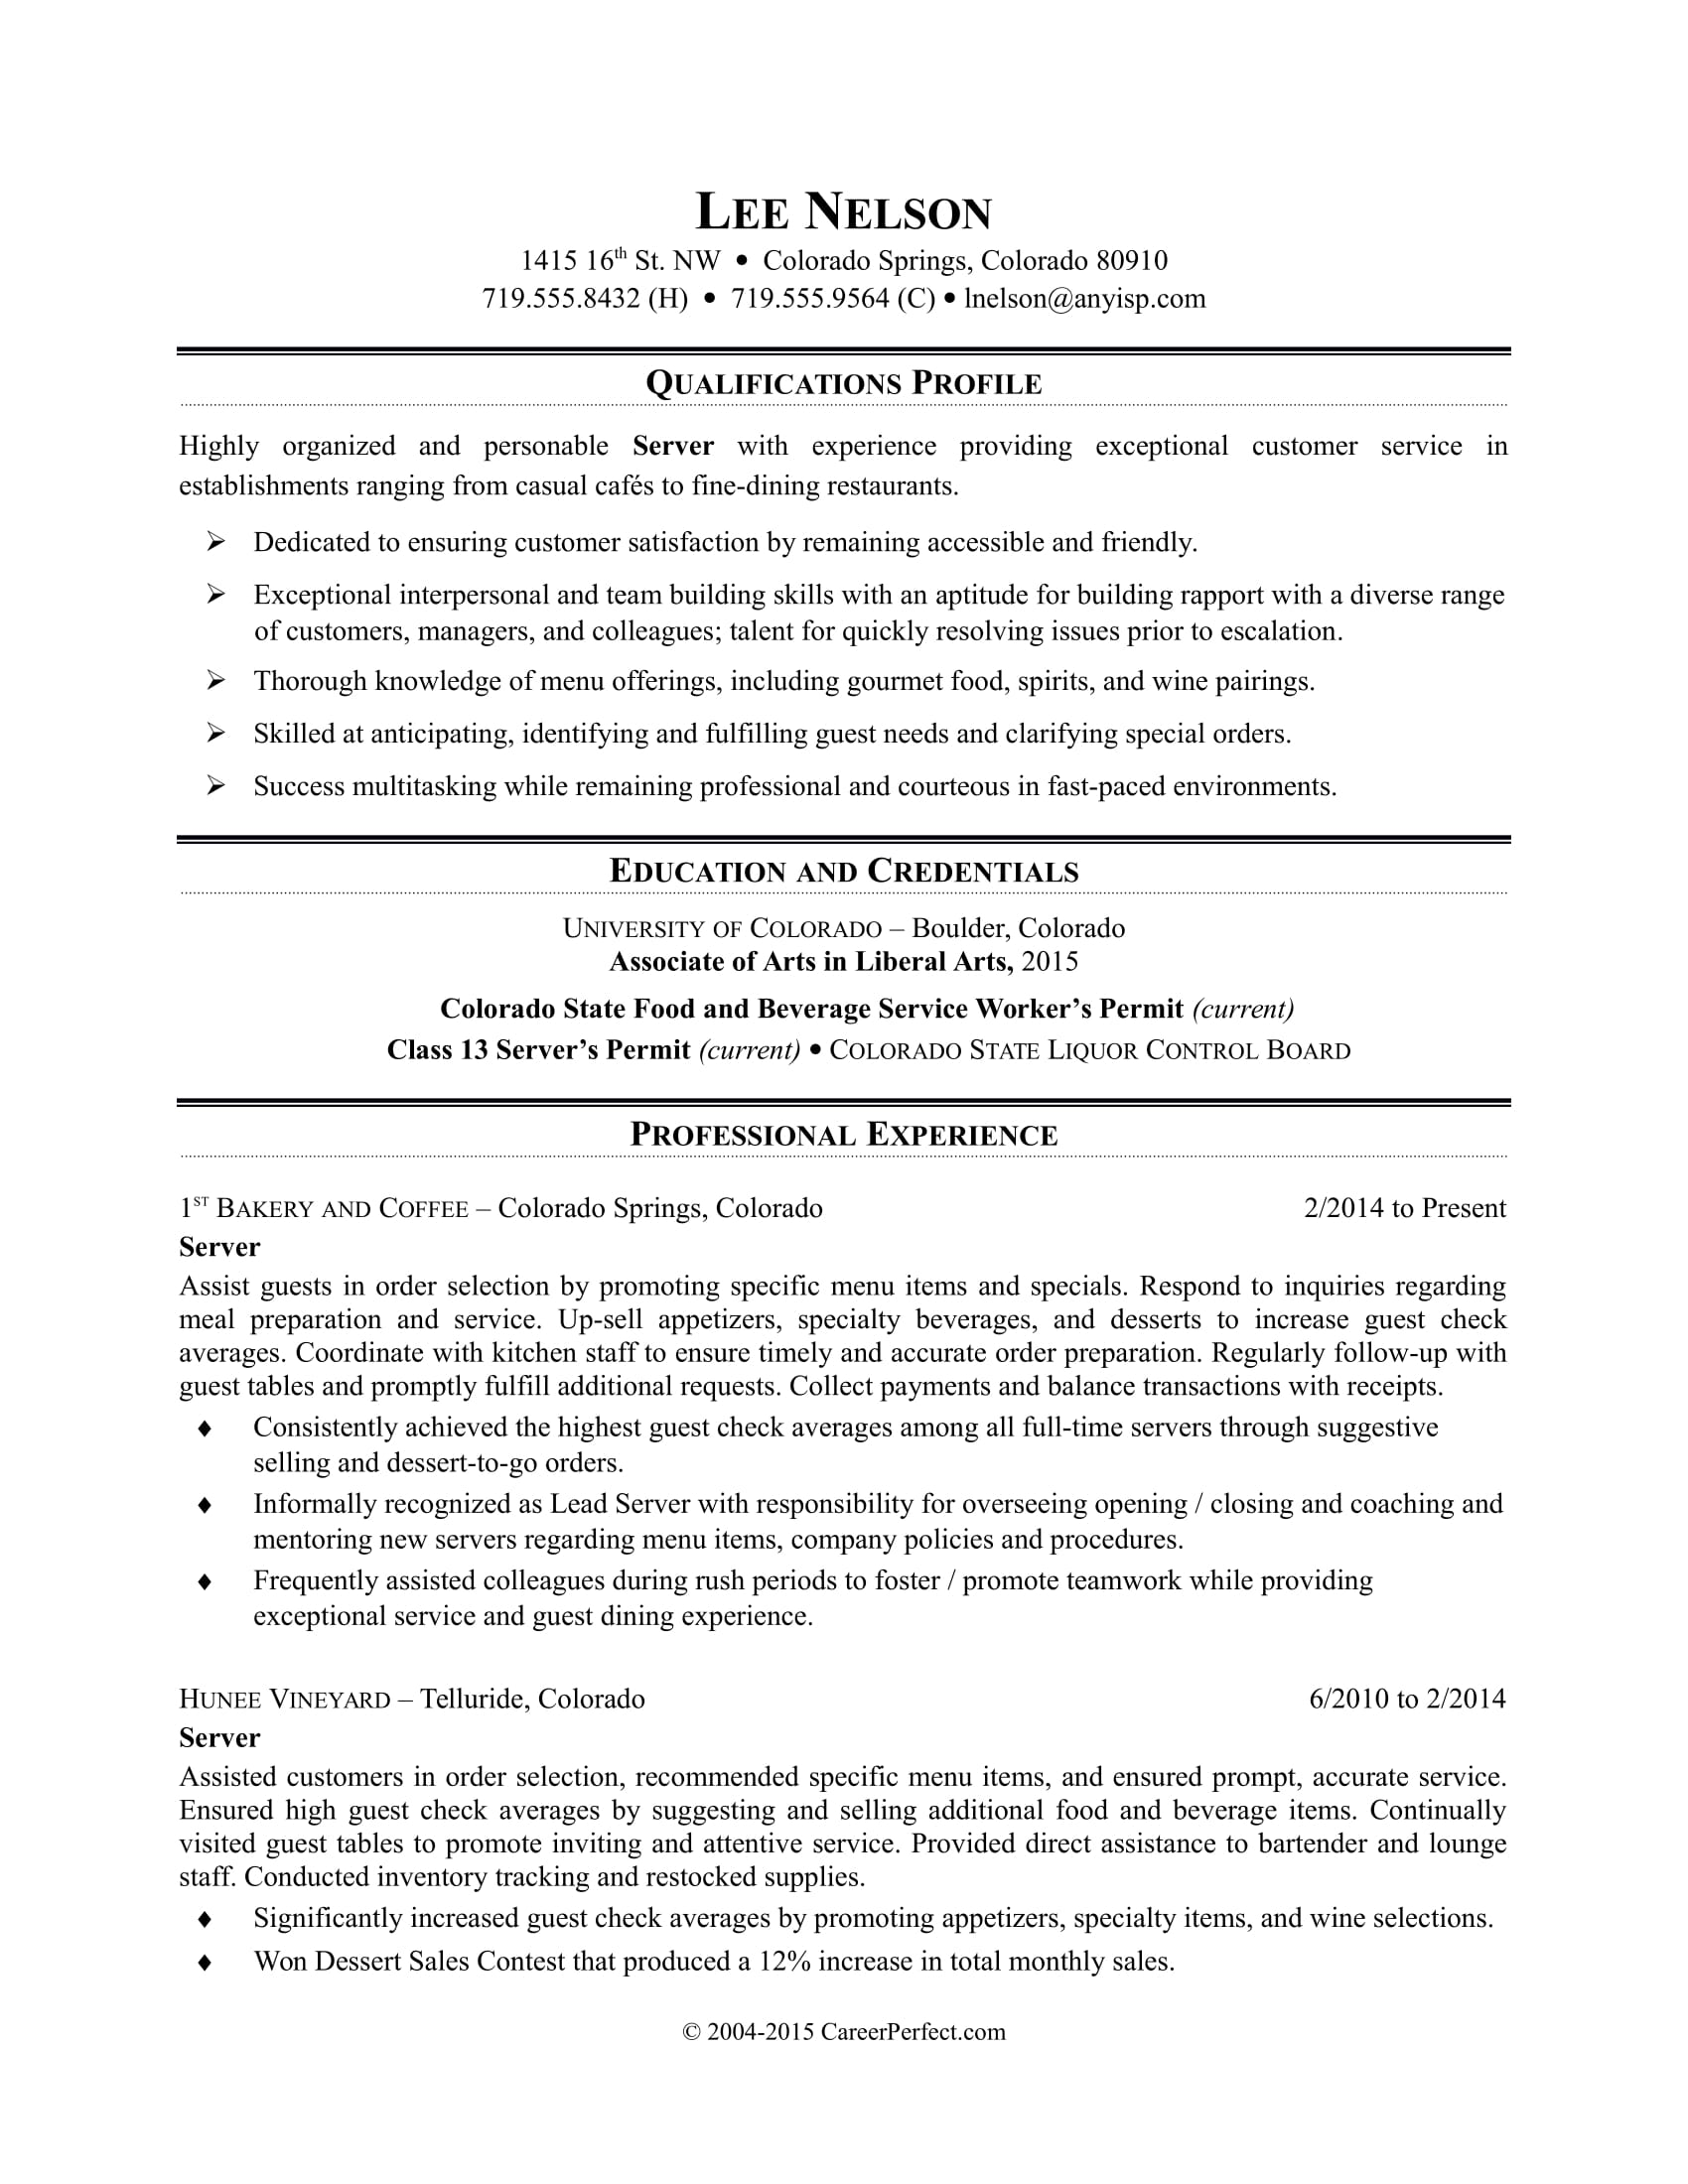 Sample Resume For A Restaurant Server Within Restaurant Server Resume Sample